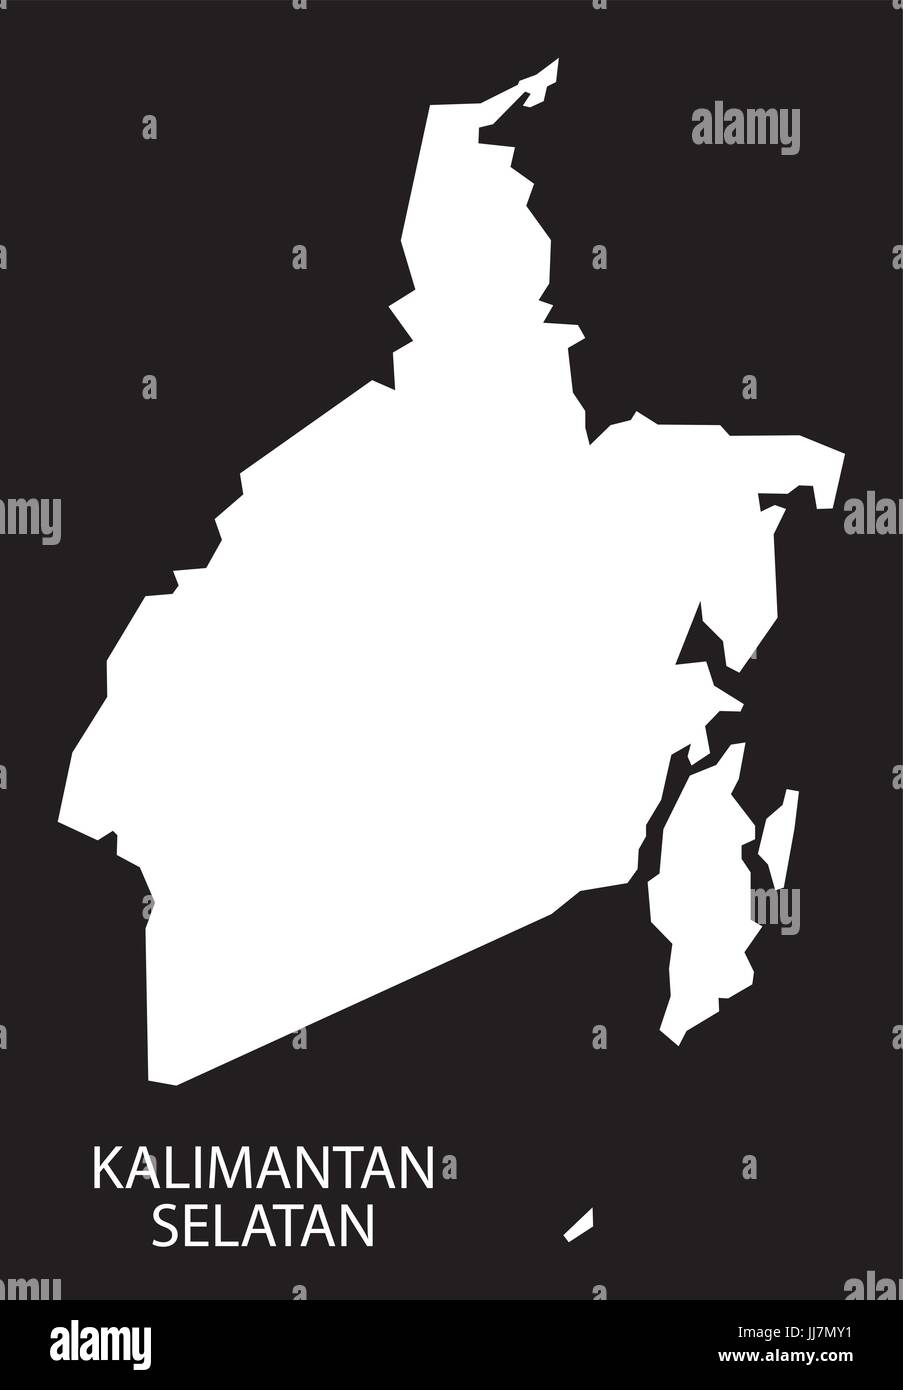 kalimantan vector vectors high resolution stock photography and images alamy https www alamy com stock photo kalimantan selatan indonesia map black inverted silhouette illustration 148916853 html